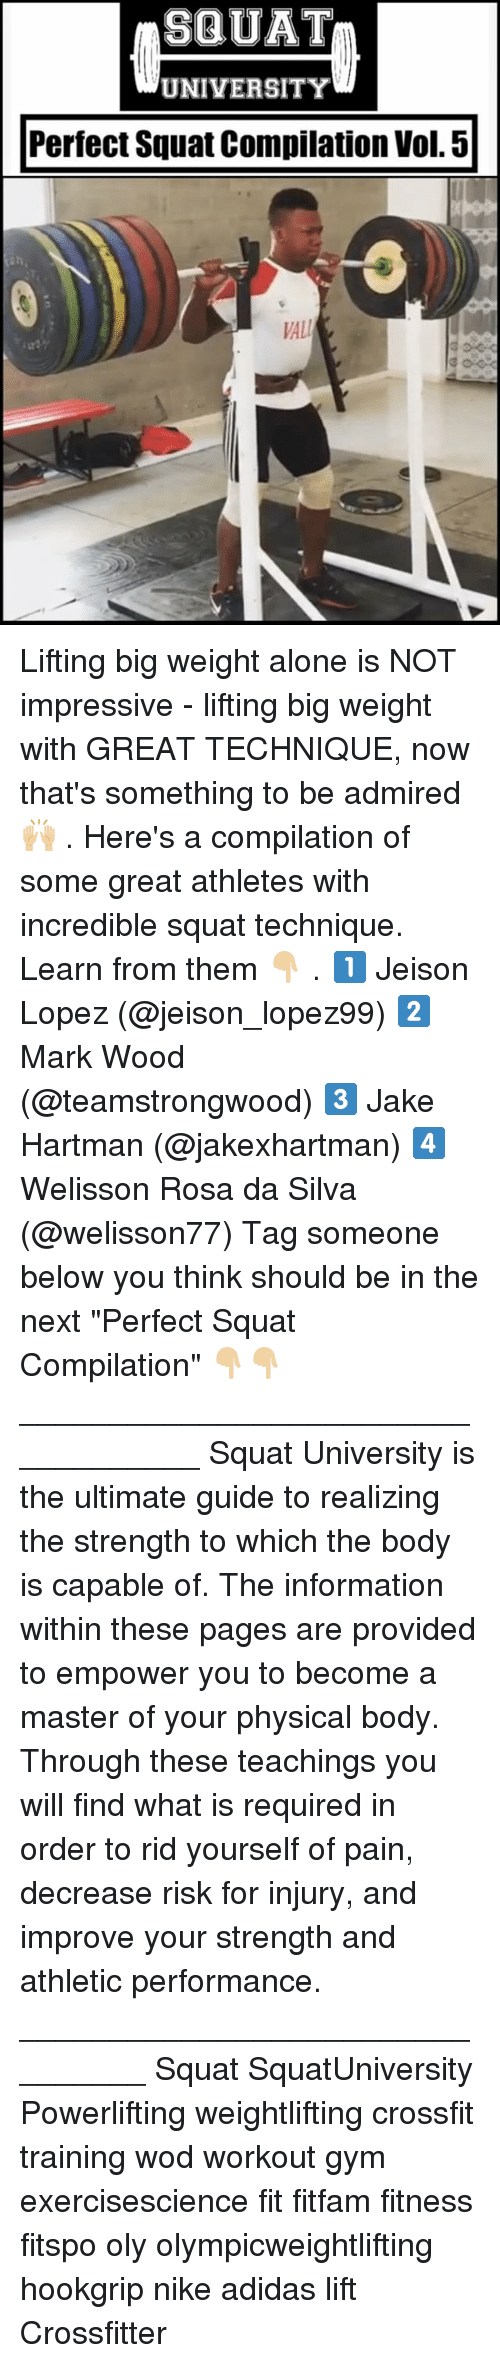 "Rosas: SQUAT  UNIVERSITY  Perfect Squat Compilation Vol. 5  VAL Lifting big weight alone is NOT impressive - lifting big weight with GREAT TECHNIQUE, now that's something to be admired 🙌🏼 . Here's a compilation of some great athletes with incredible squat technique. Learn from them 👇🏼 . 1️⃣ Jeison Lopez (@jeison_lopez99) 2️⃣ Mark Wood (@teamstrongwood) 3️⃣ Jake Hartman (@jakexhartman) 4️⃣ Welisson Rosa da Silva (@welisson77) Tag someone below you think should be in the next ""Perfect Squat Compilation"" 👇🏼👇🏼 ___________________________________ Squat University is the ultimate guide to realizing the strength to which the body is capable of. The information within these pages are provided to empower you to become a master of your physical body. Through these teachings you will find what is required in order to rid yourself of pain, decrease risk for injury, and improve your strength and athletic performance. ________________________________ Squat SquatUniversity Powerlifting weightlifting crossfit training wod workout gym exercisescience fit fitfam fitness fitspo oly olympicweightlifting hookgrip nike adidas lift Crossfitter"